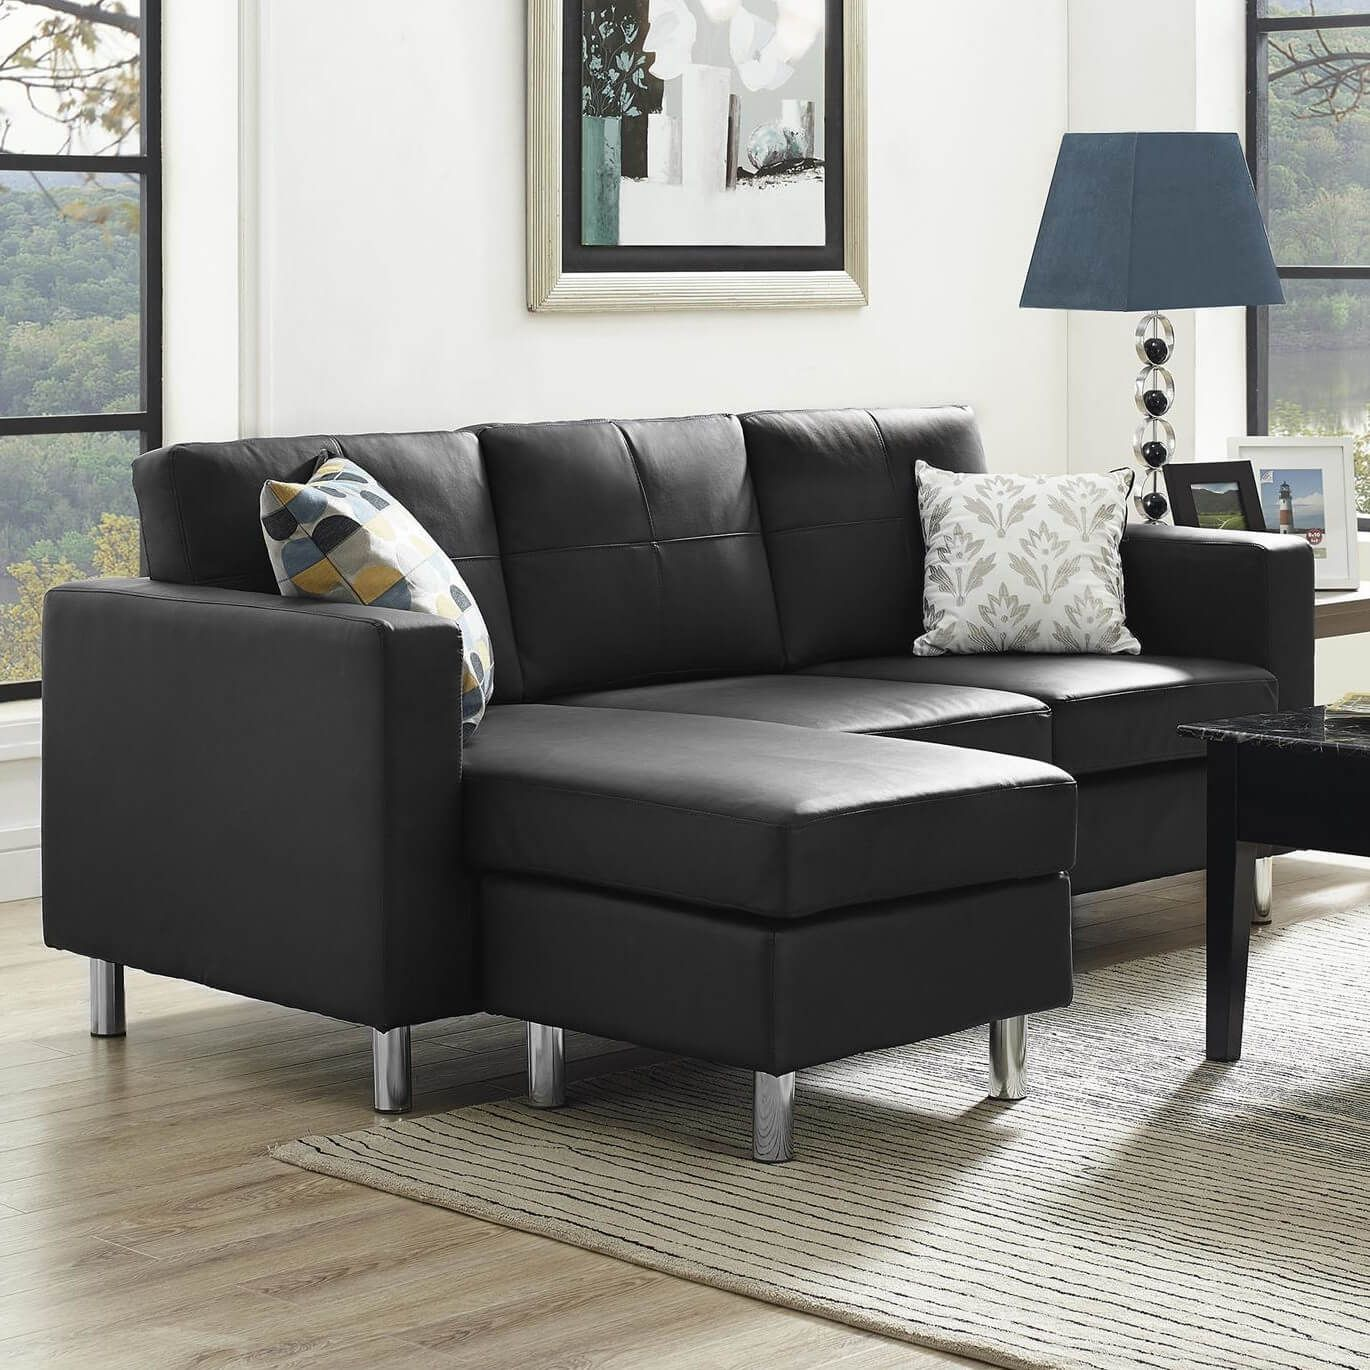 40 Cheap Sectional Sofas Under $500 For 2018  Living Room Alluring Cheap Living Room Sets Under $500 Inspiration